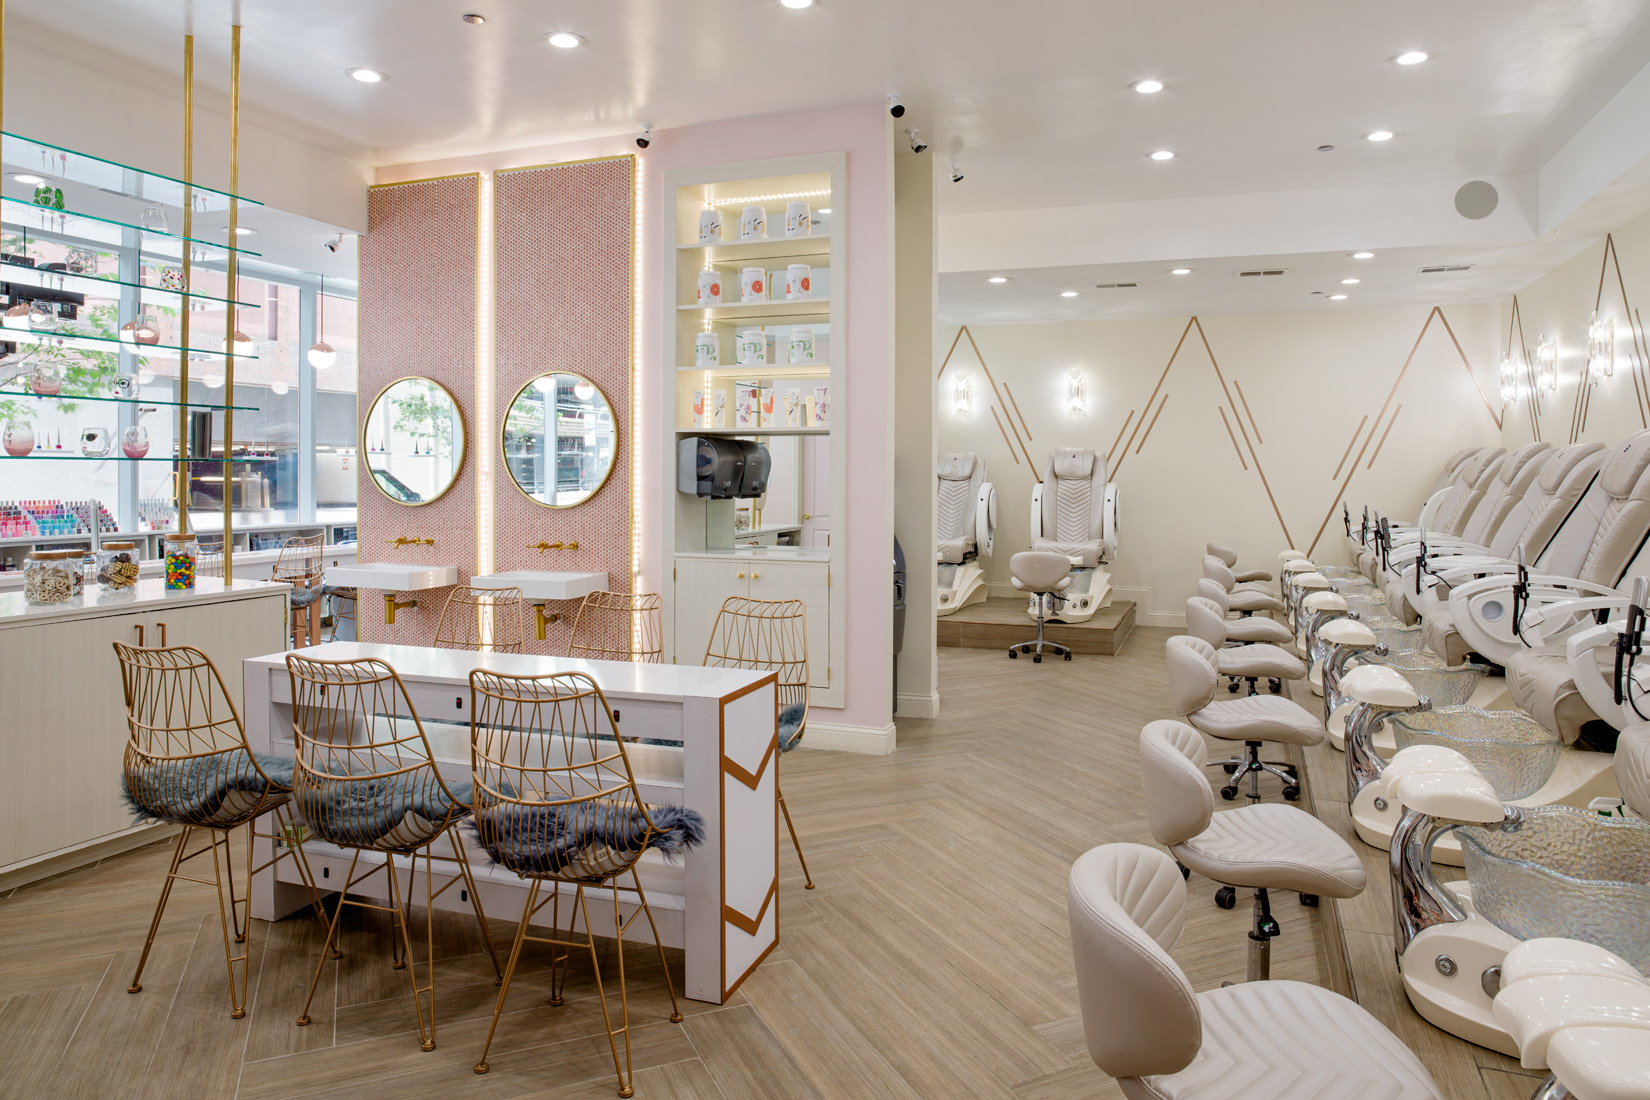 Nail Salon 60611 Bedazzled Nails Spa Of Chicago Illinois Gel Manicure Dipping Powder Organic Pedicure Acrylic Waxing